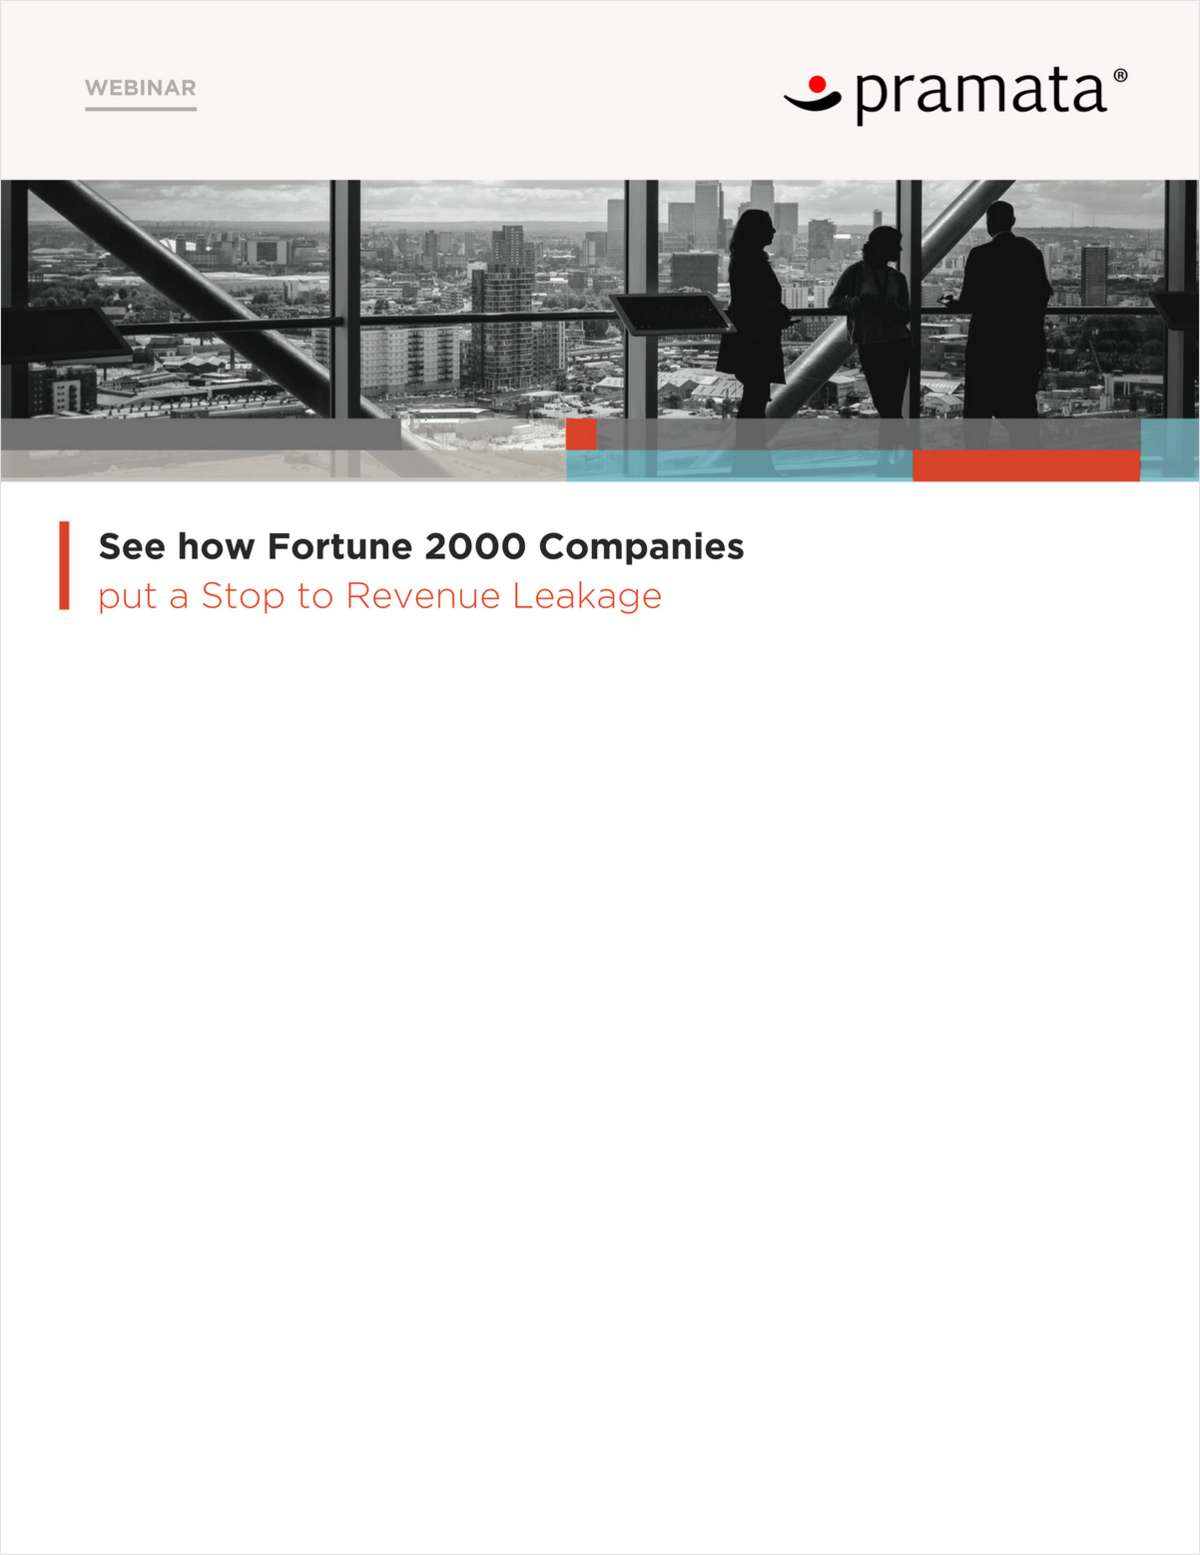 [Webinar] See how Fortune 2000 Companies put a Stop to Revenue Leakage